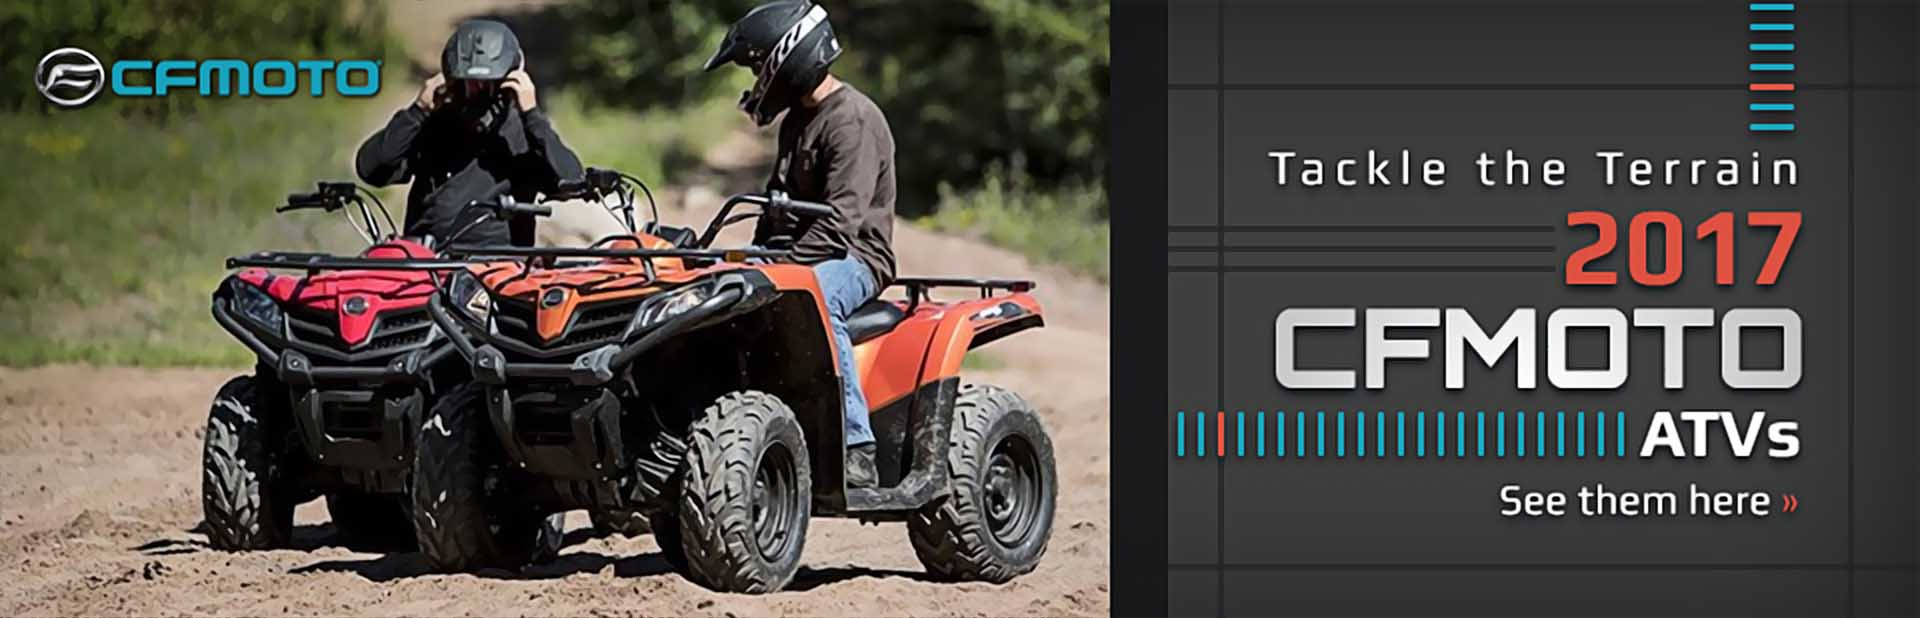 2017 CFMOTO ATVs: Click here to view the models.